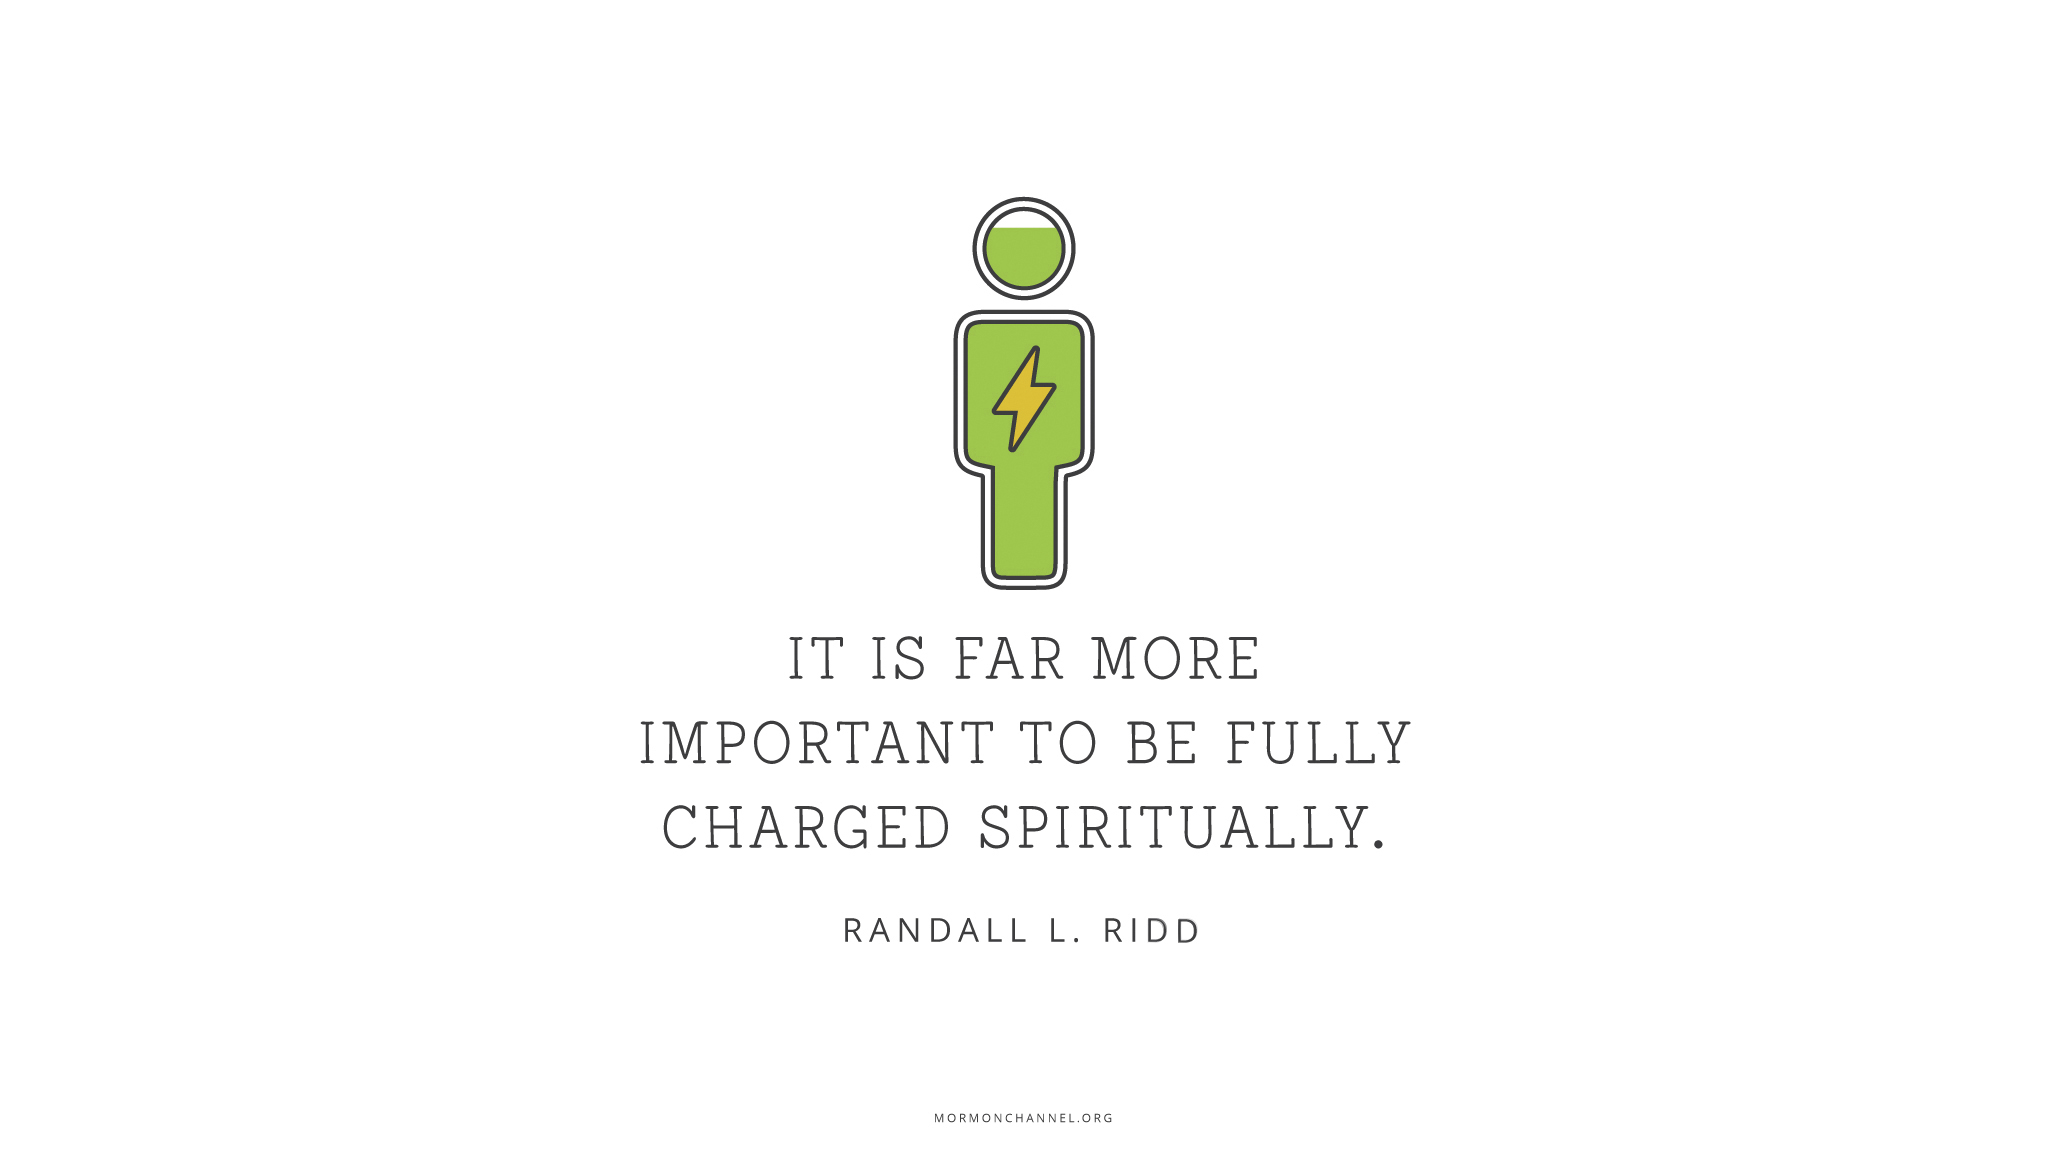 """""""It is far more important to be fully charged spiritually.""""—Brother Randall L. Ridd, """"The Choice Generation"""""""